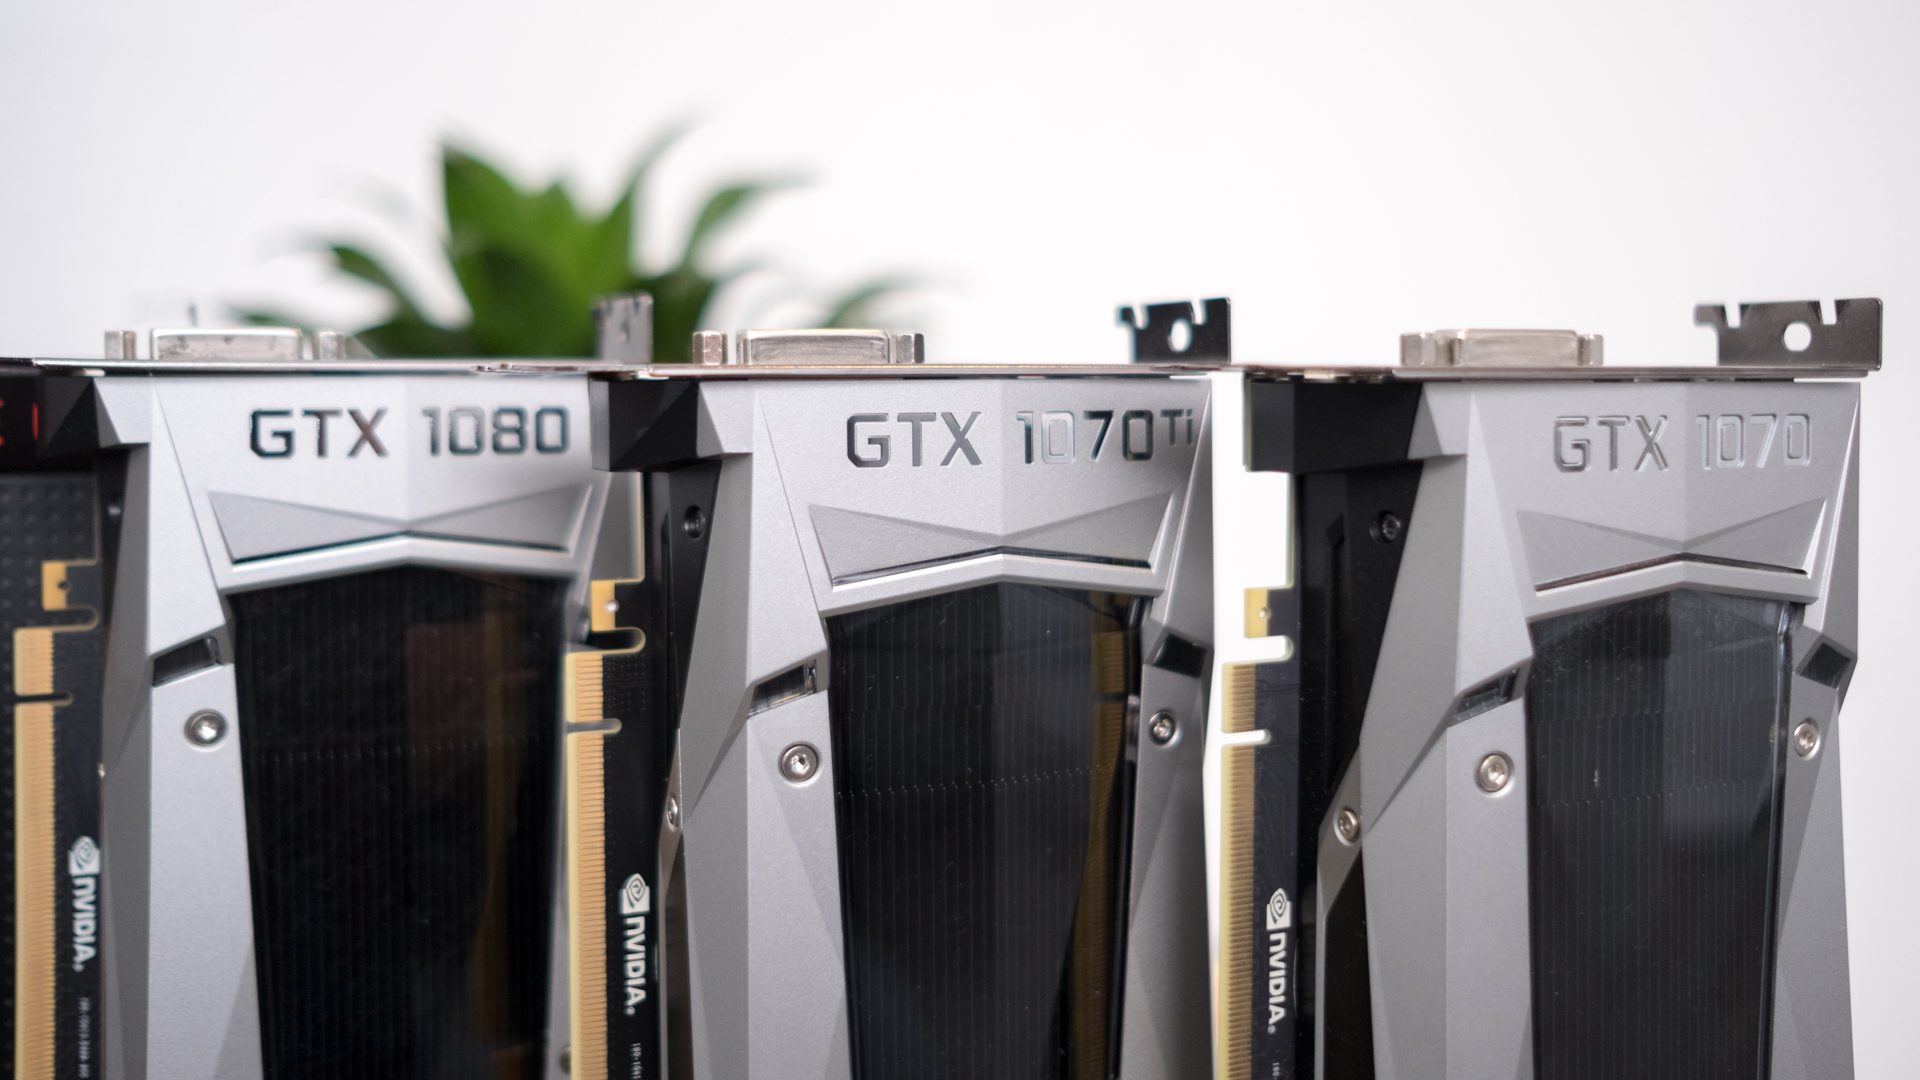 Nvidia will soon stop releasing drivers for 32-bit systems